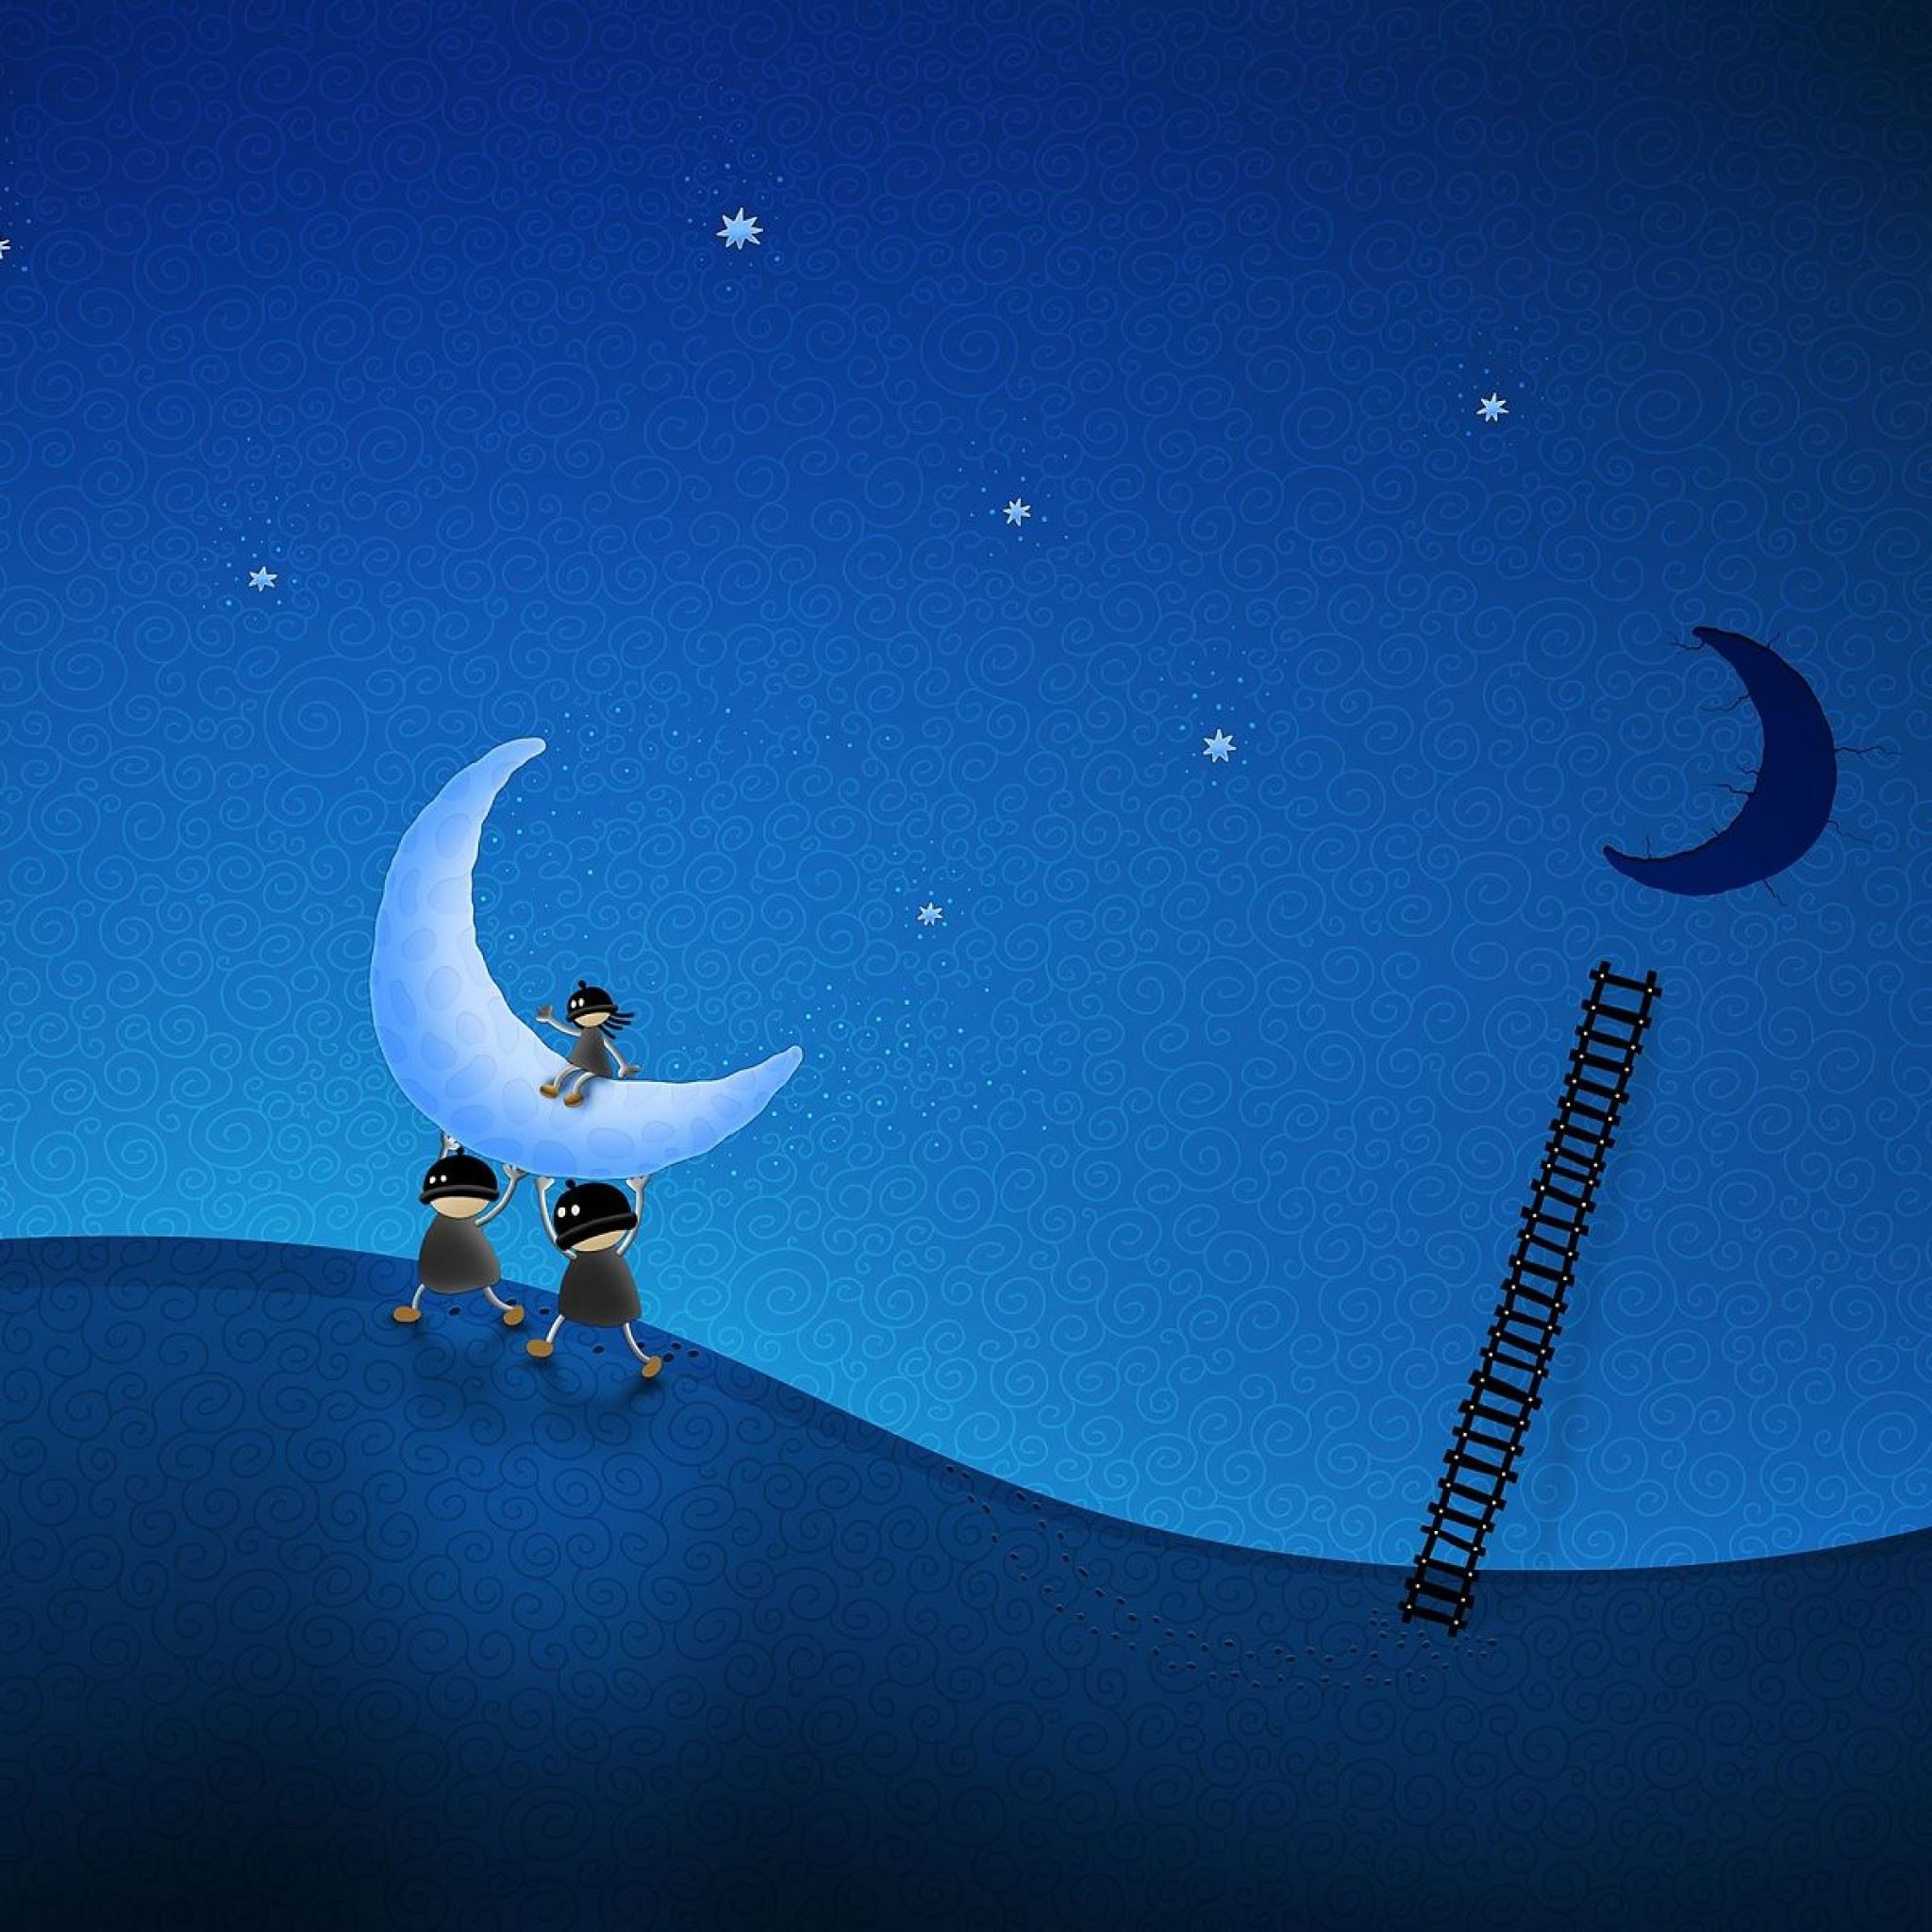 Ladder Moon Thieves Figure iPad Air wallpaper